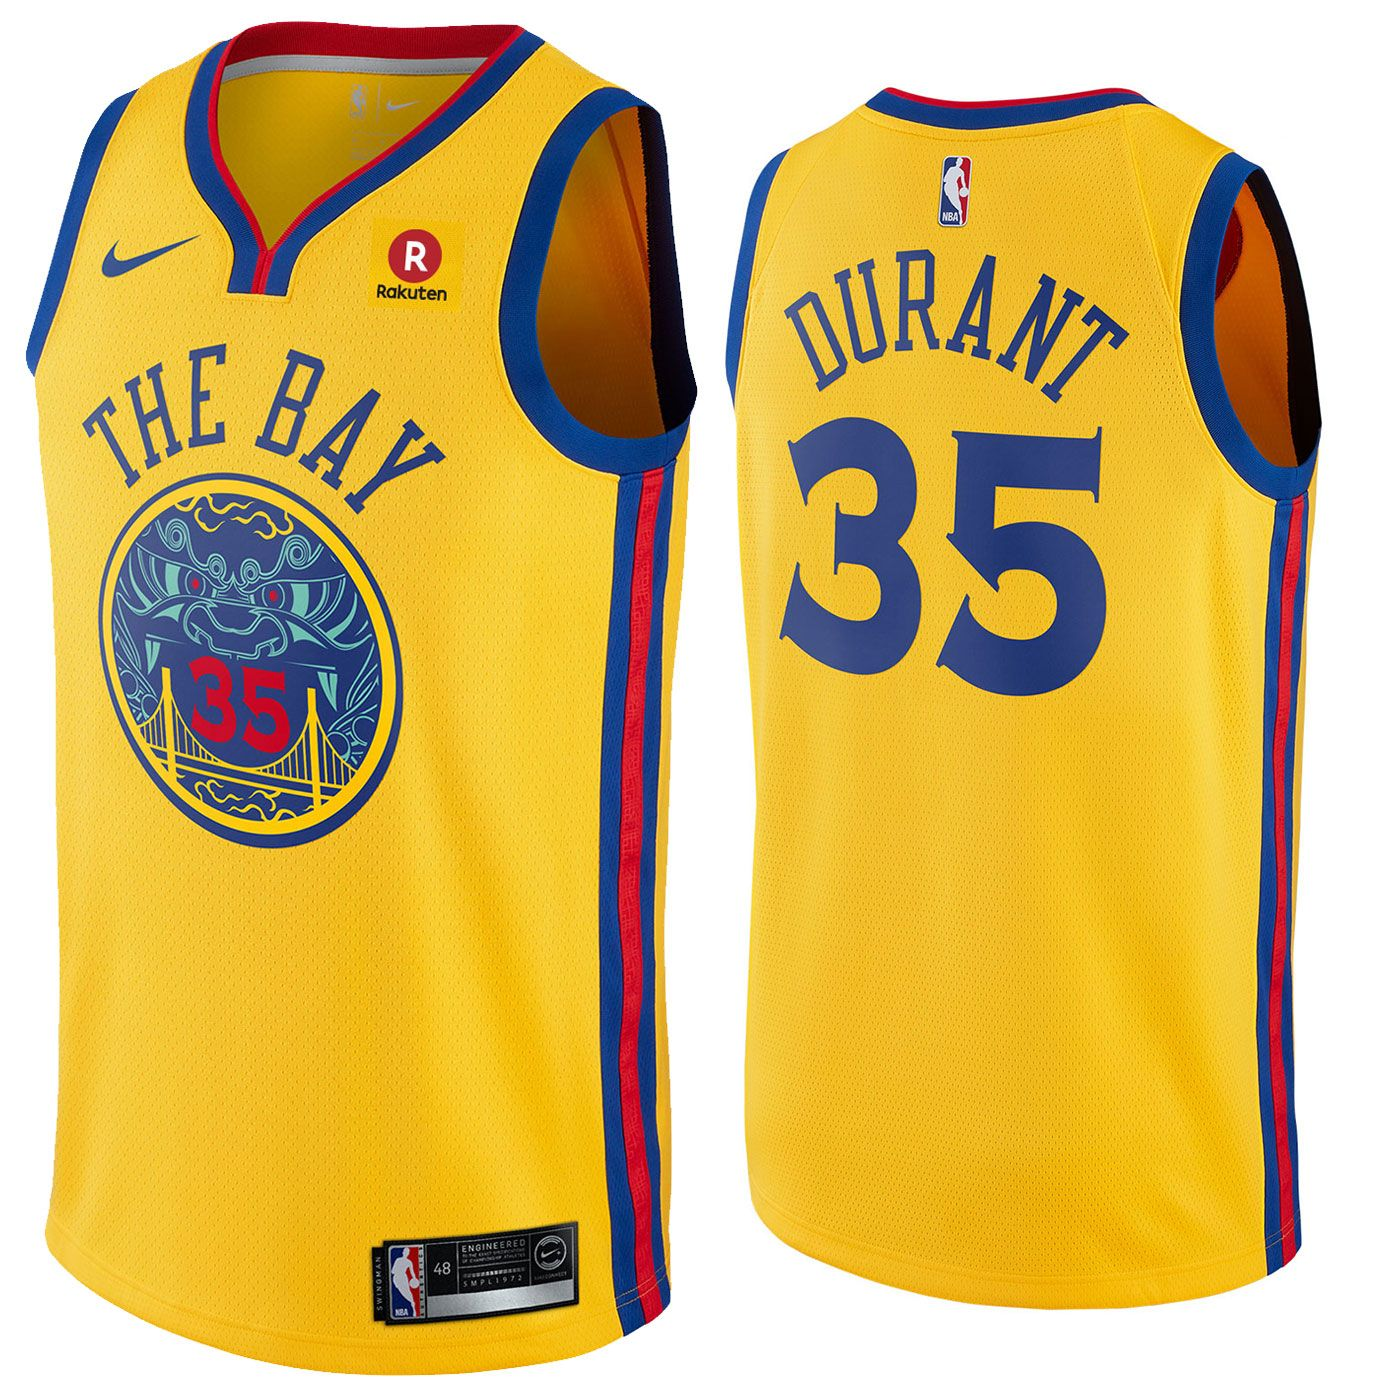 Golden State Warriors Nike Dri-FIT Men s Chinese Heritage Kevin Durant  35  Swingman City Edition Jersey - Gold 3d329a7dc